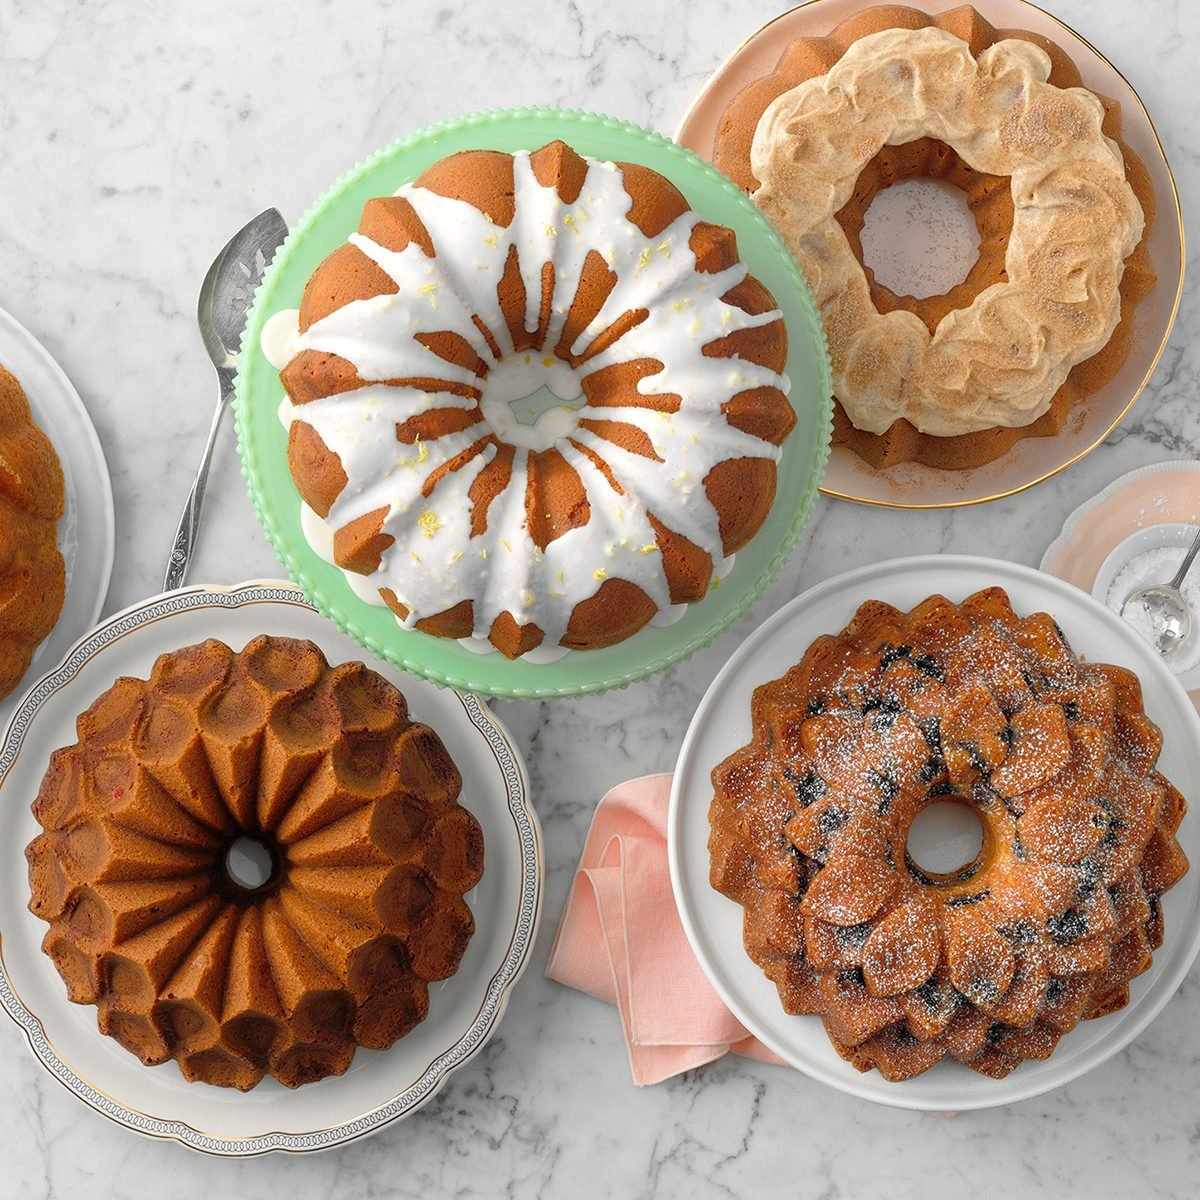 15 Tips for the Best Ever Bundt Cakes